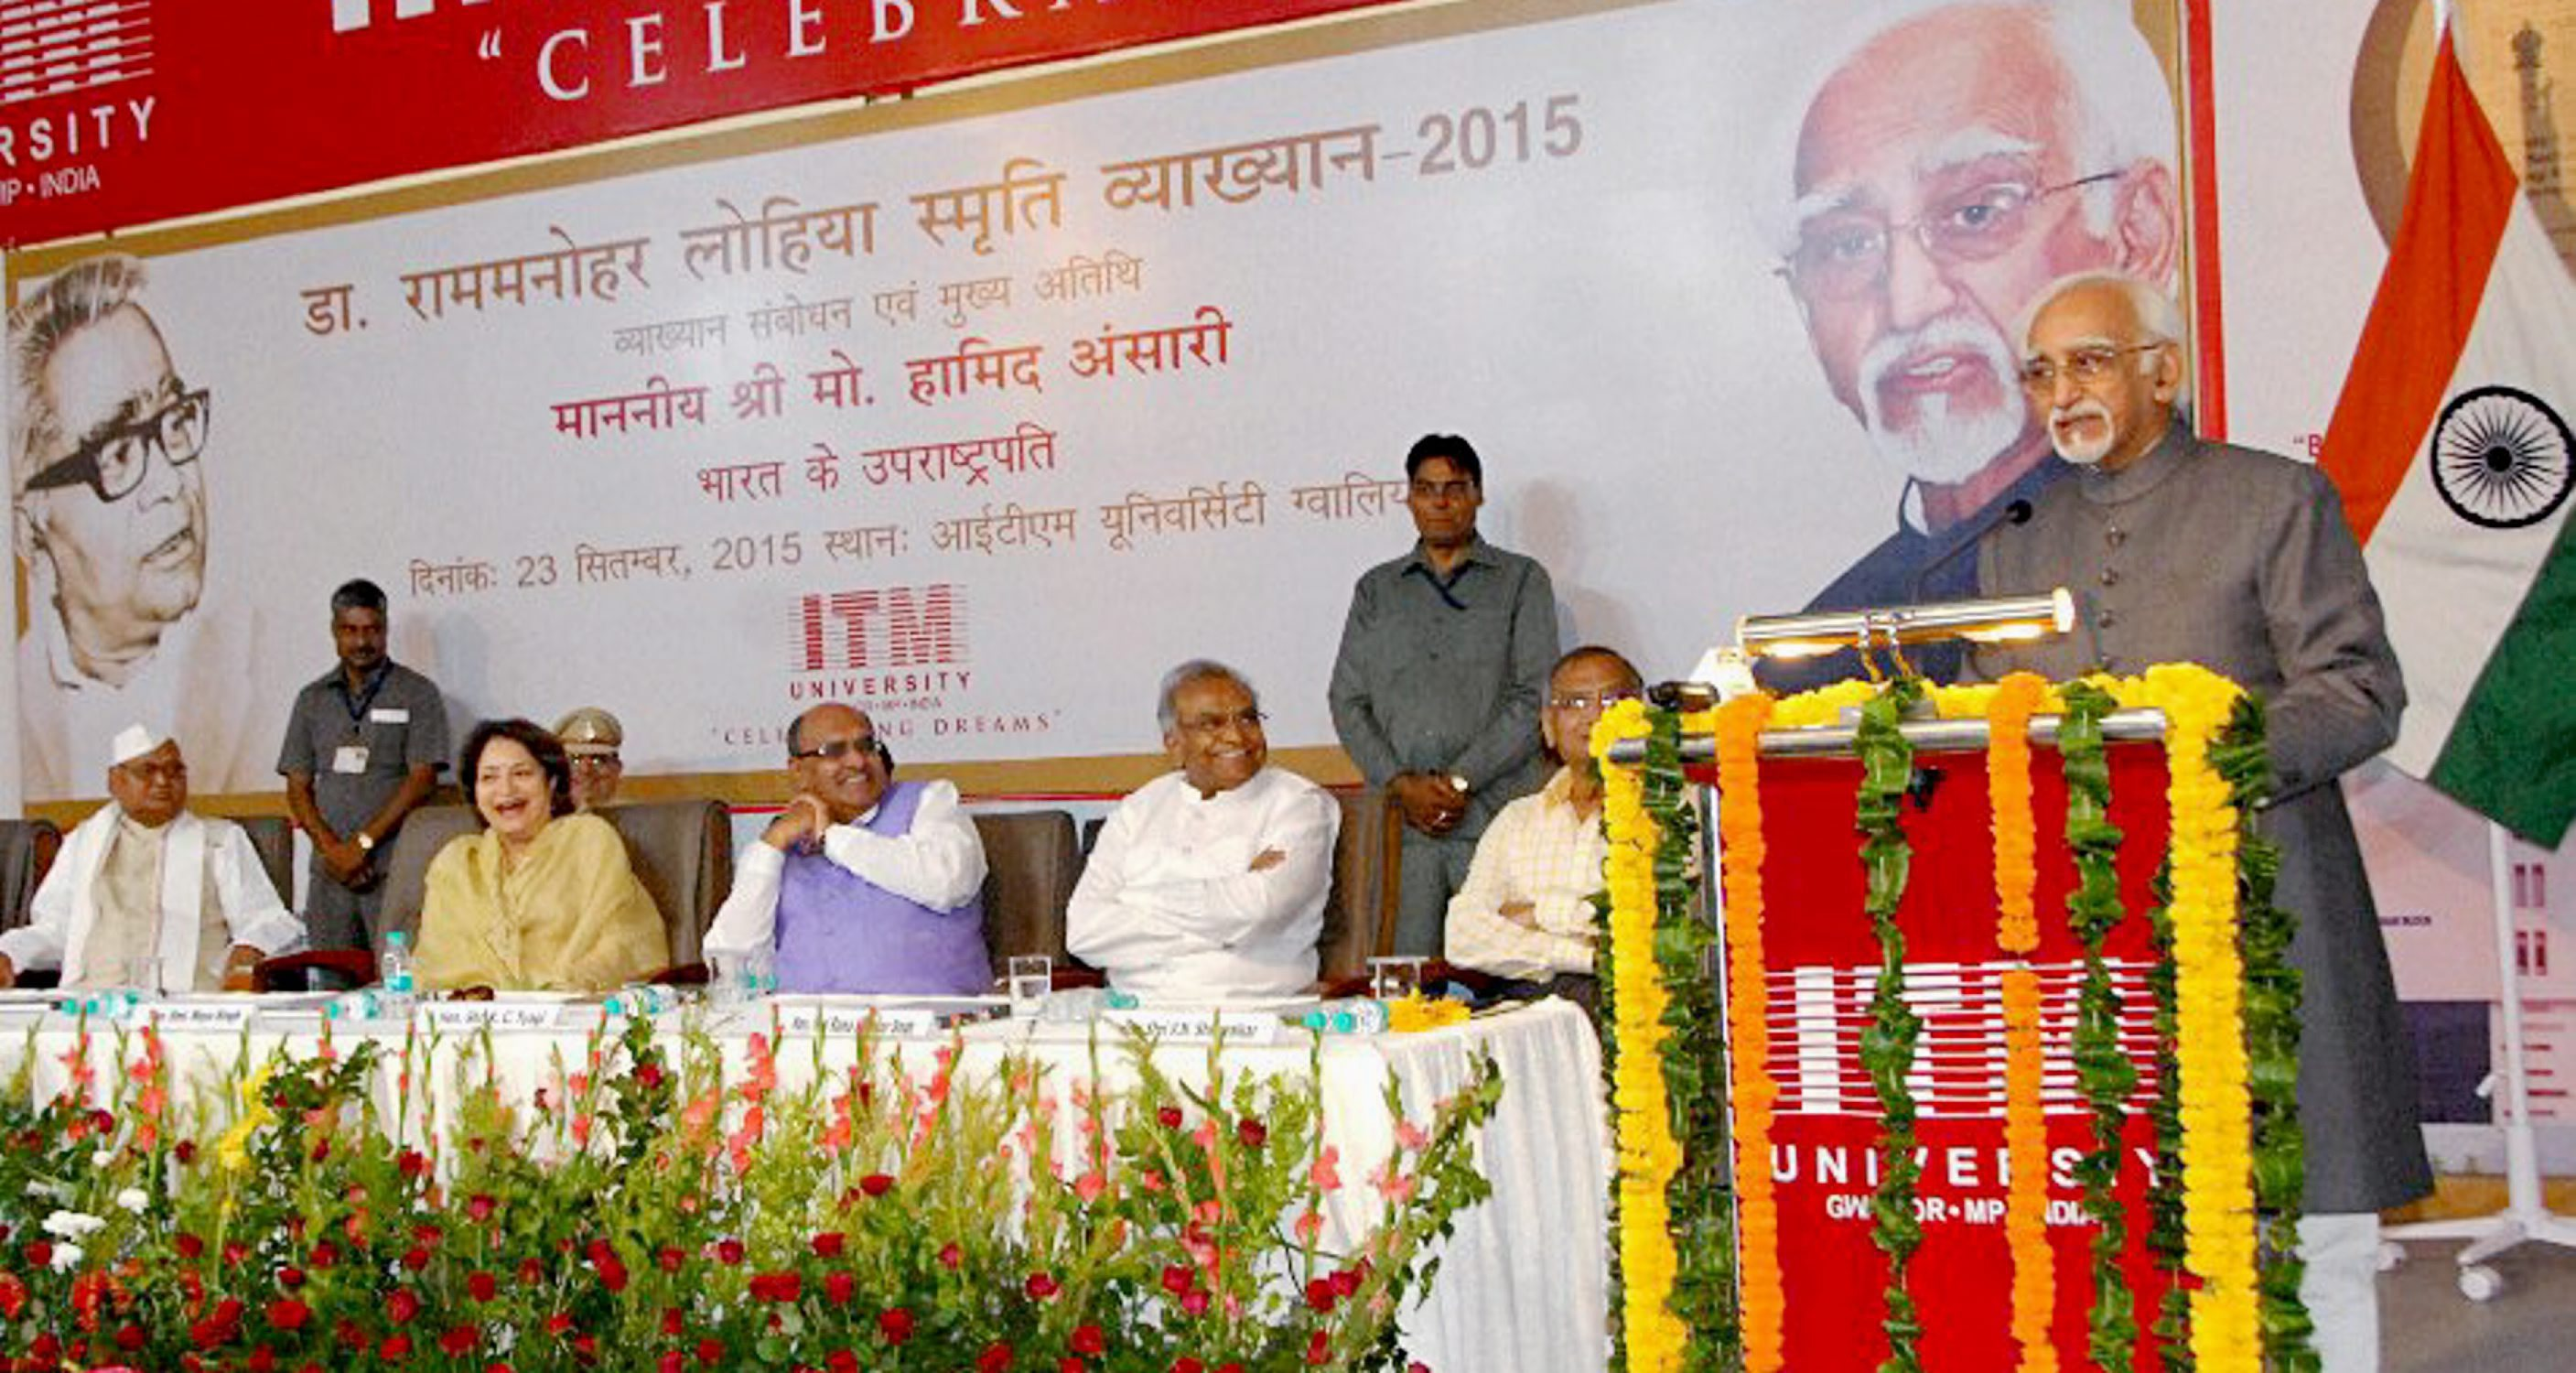 Vice President Mohd. Hamid Ansari delivering the First Ram Manohar Lohia Memorial Lecture-2015 at ITM University in Gwalior, Madhya Pradesh on Wednesday. Credit: PTI